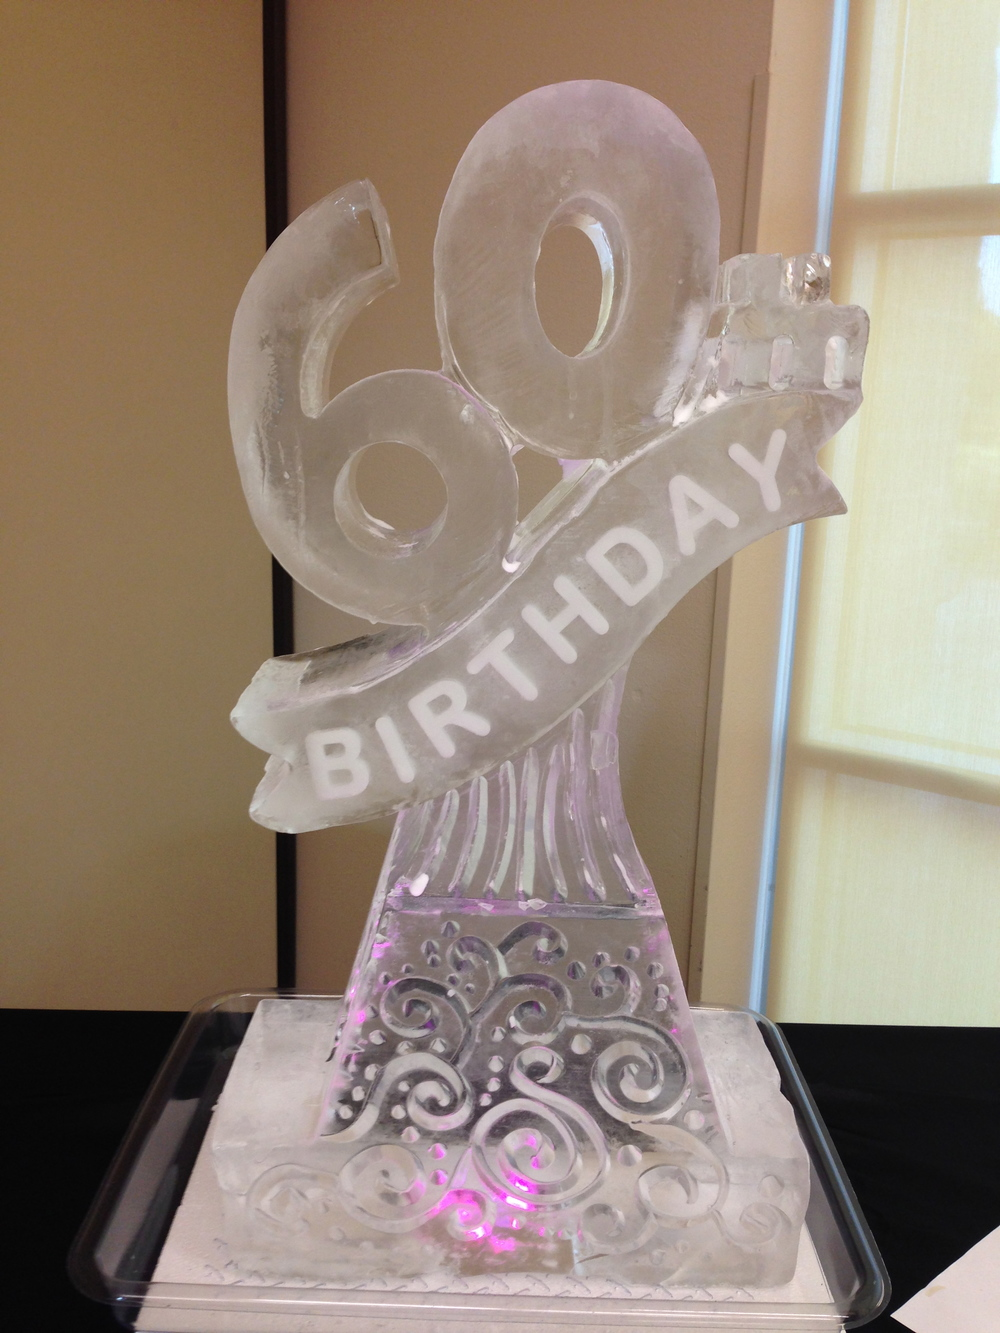 60th Birthday ice sculpture